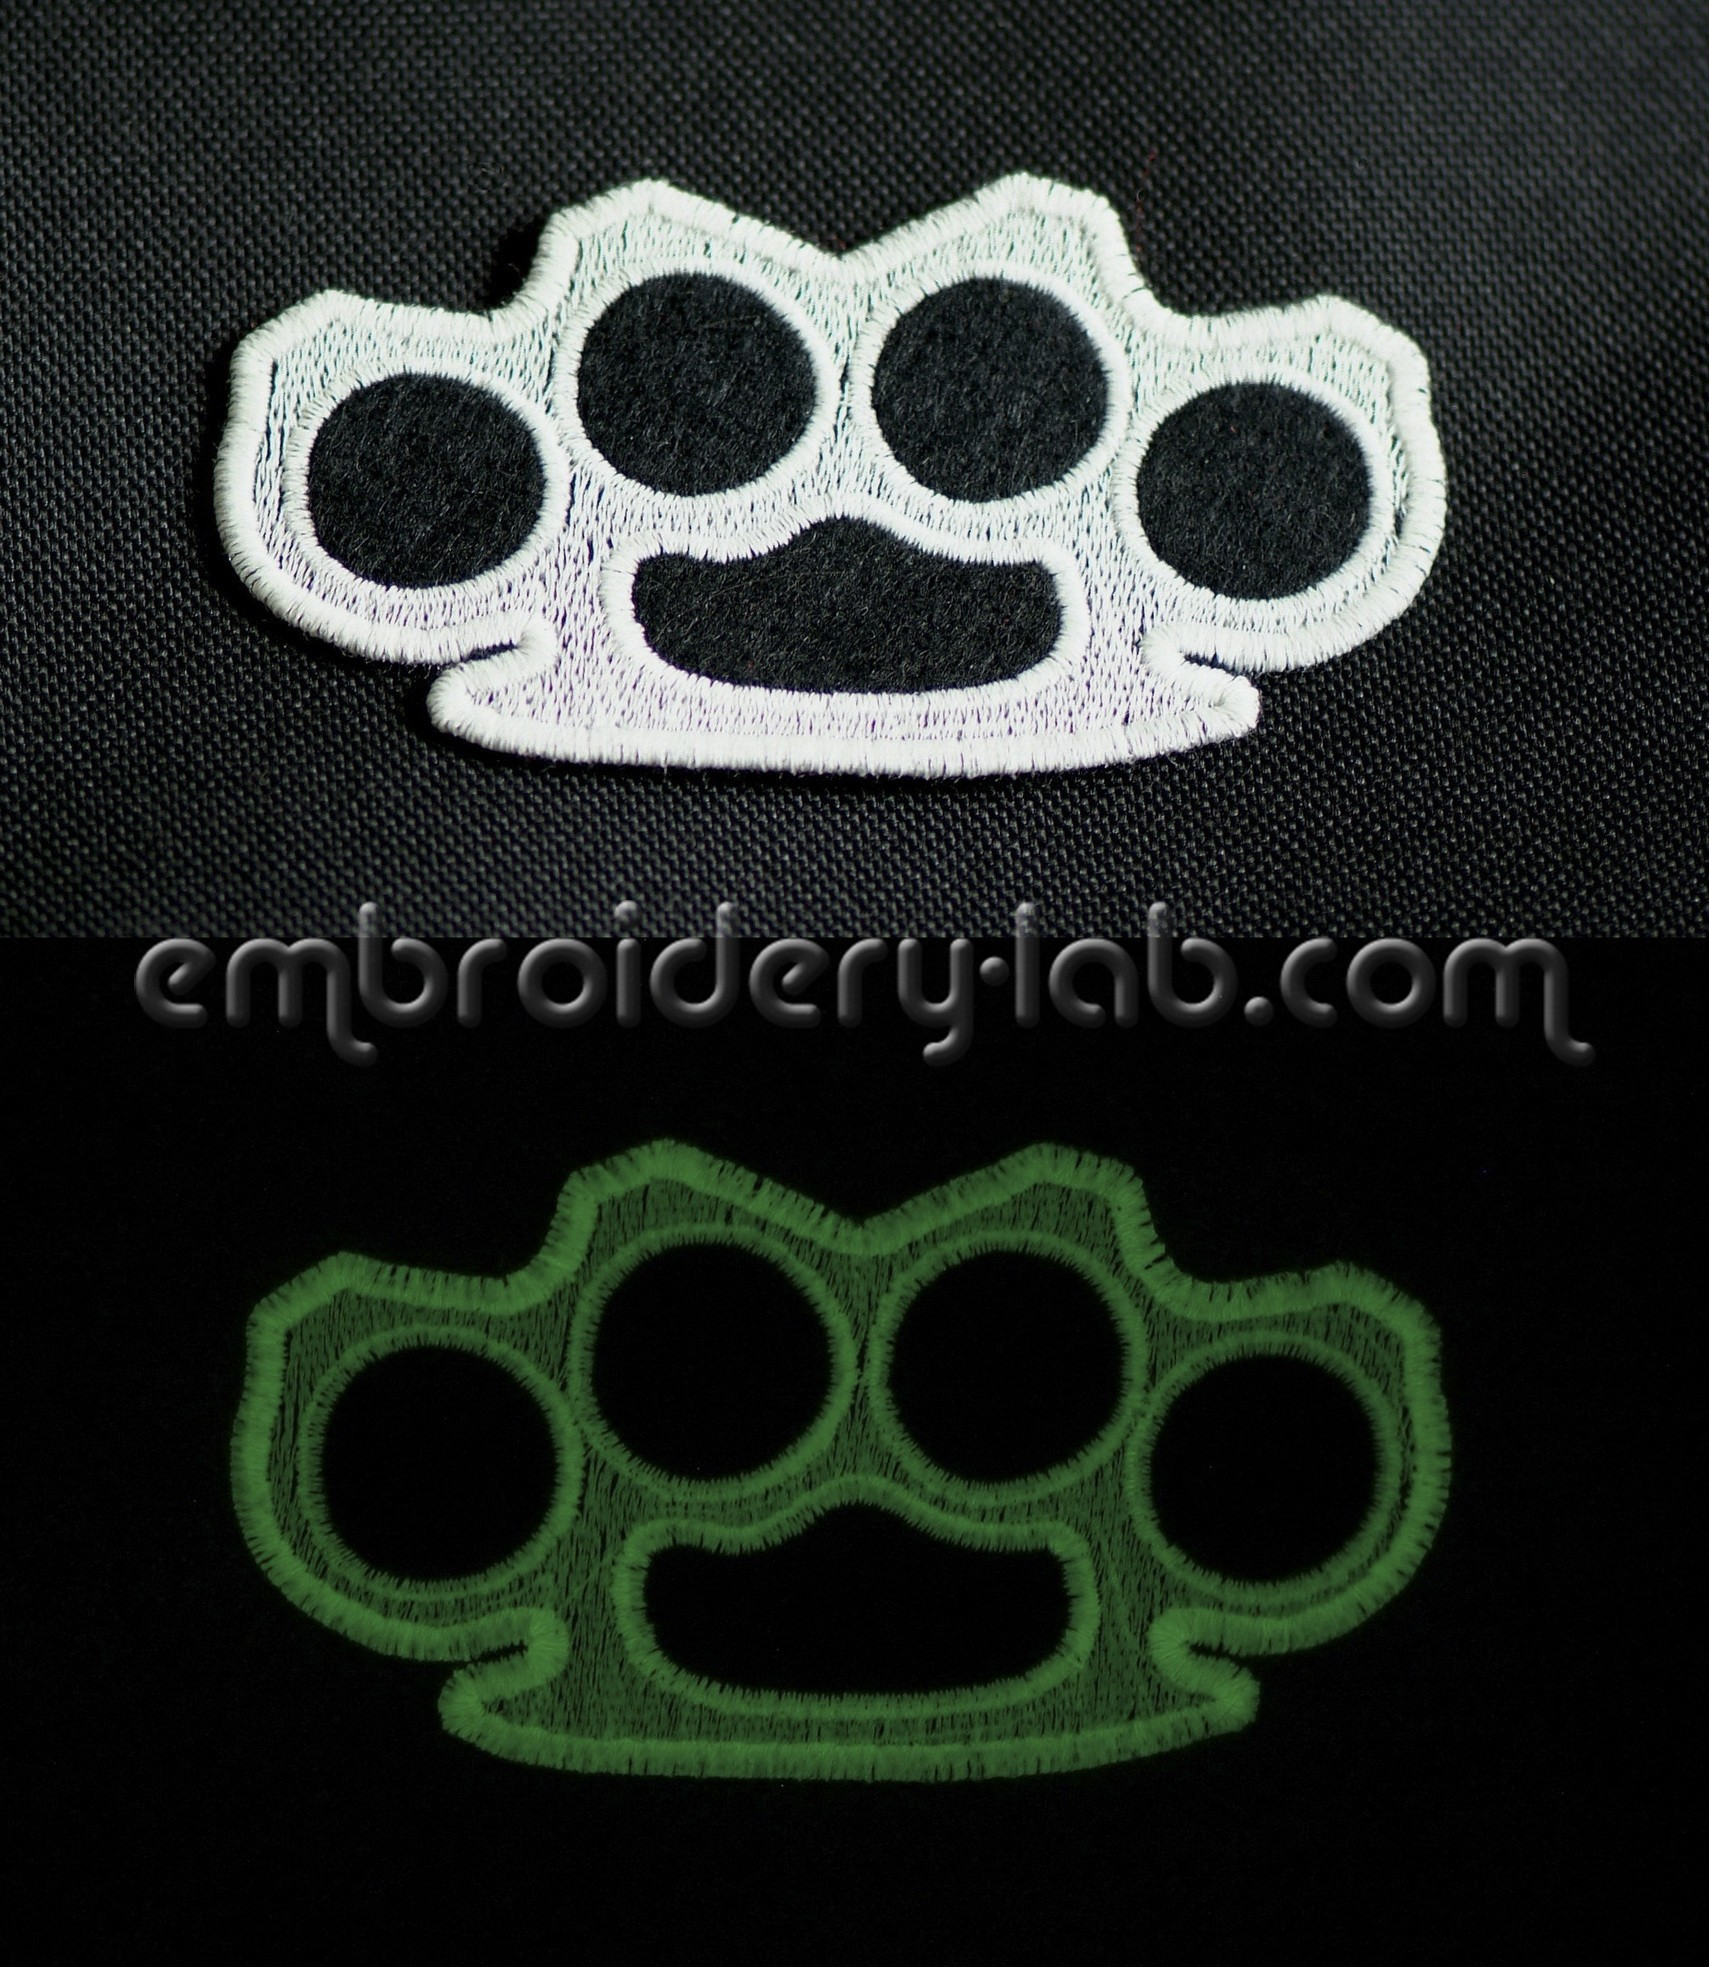 Brass knuckles patch 0001